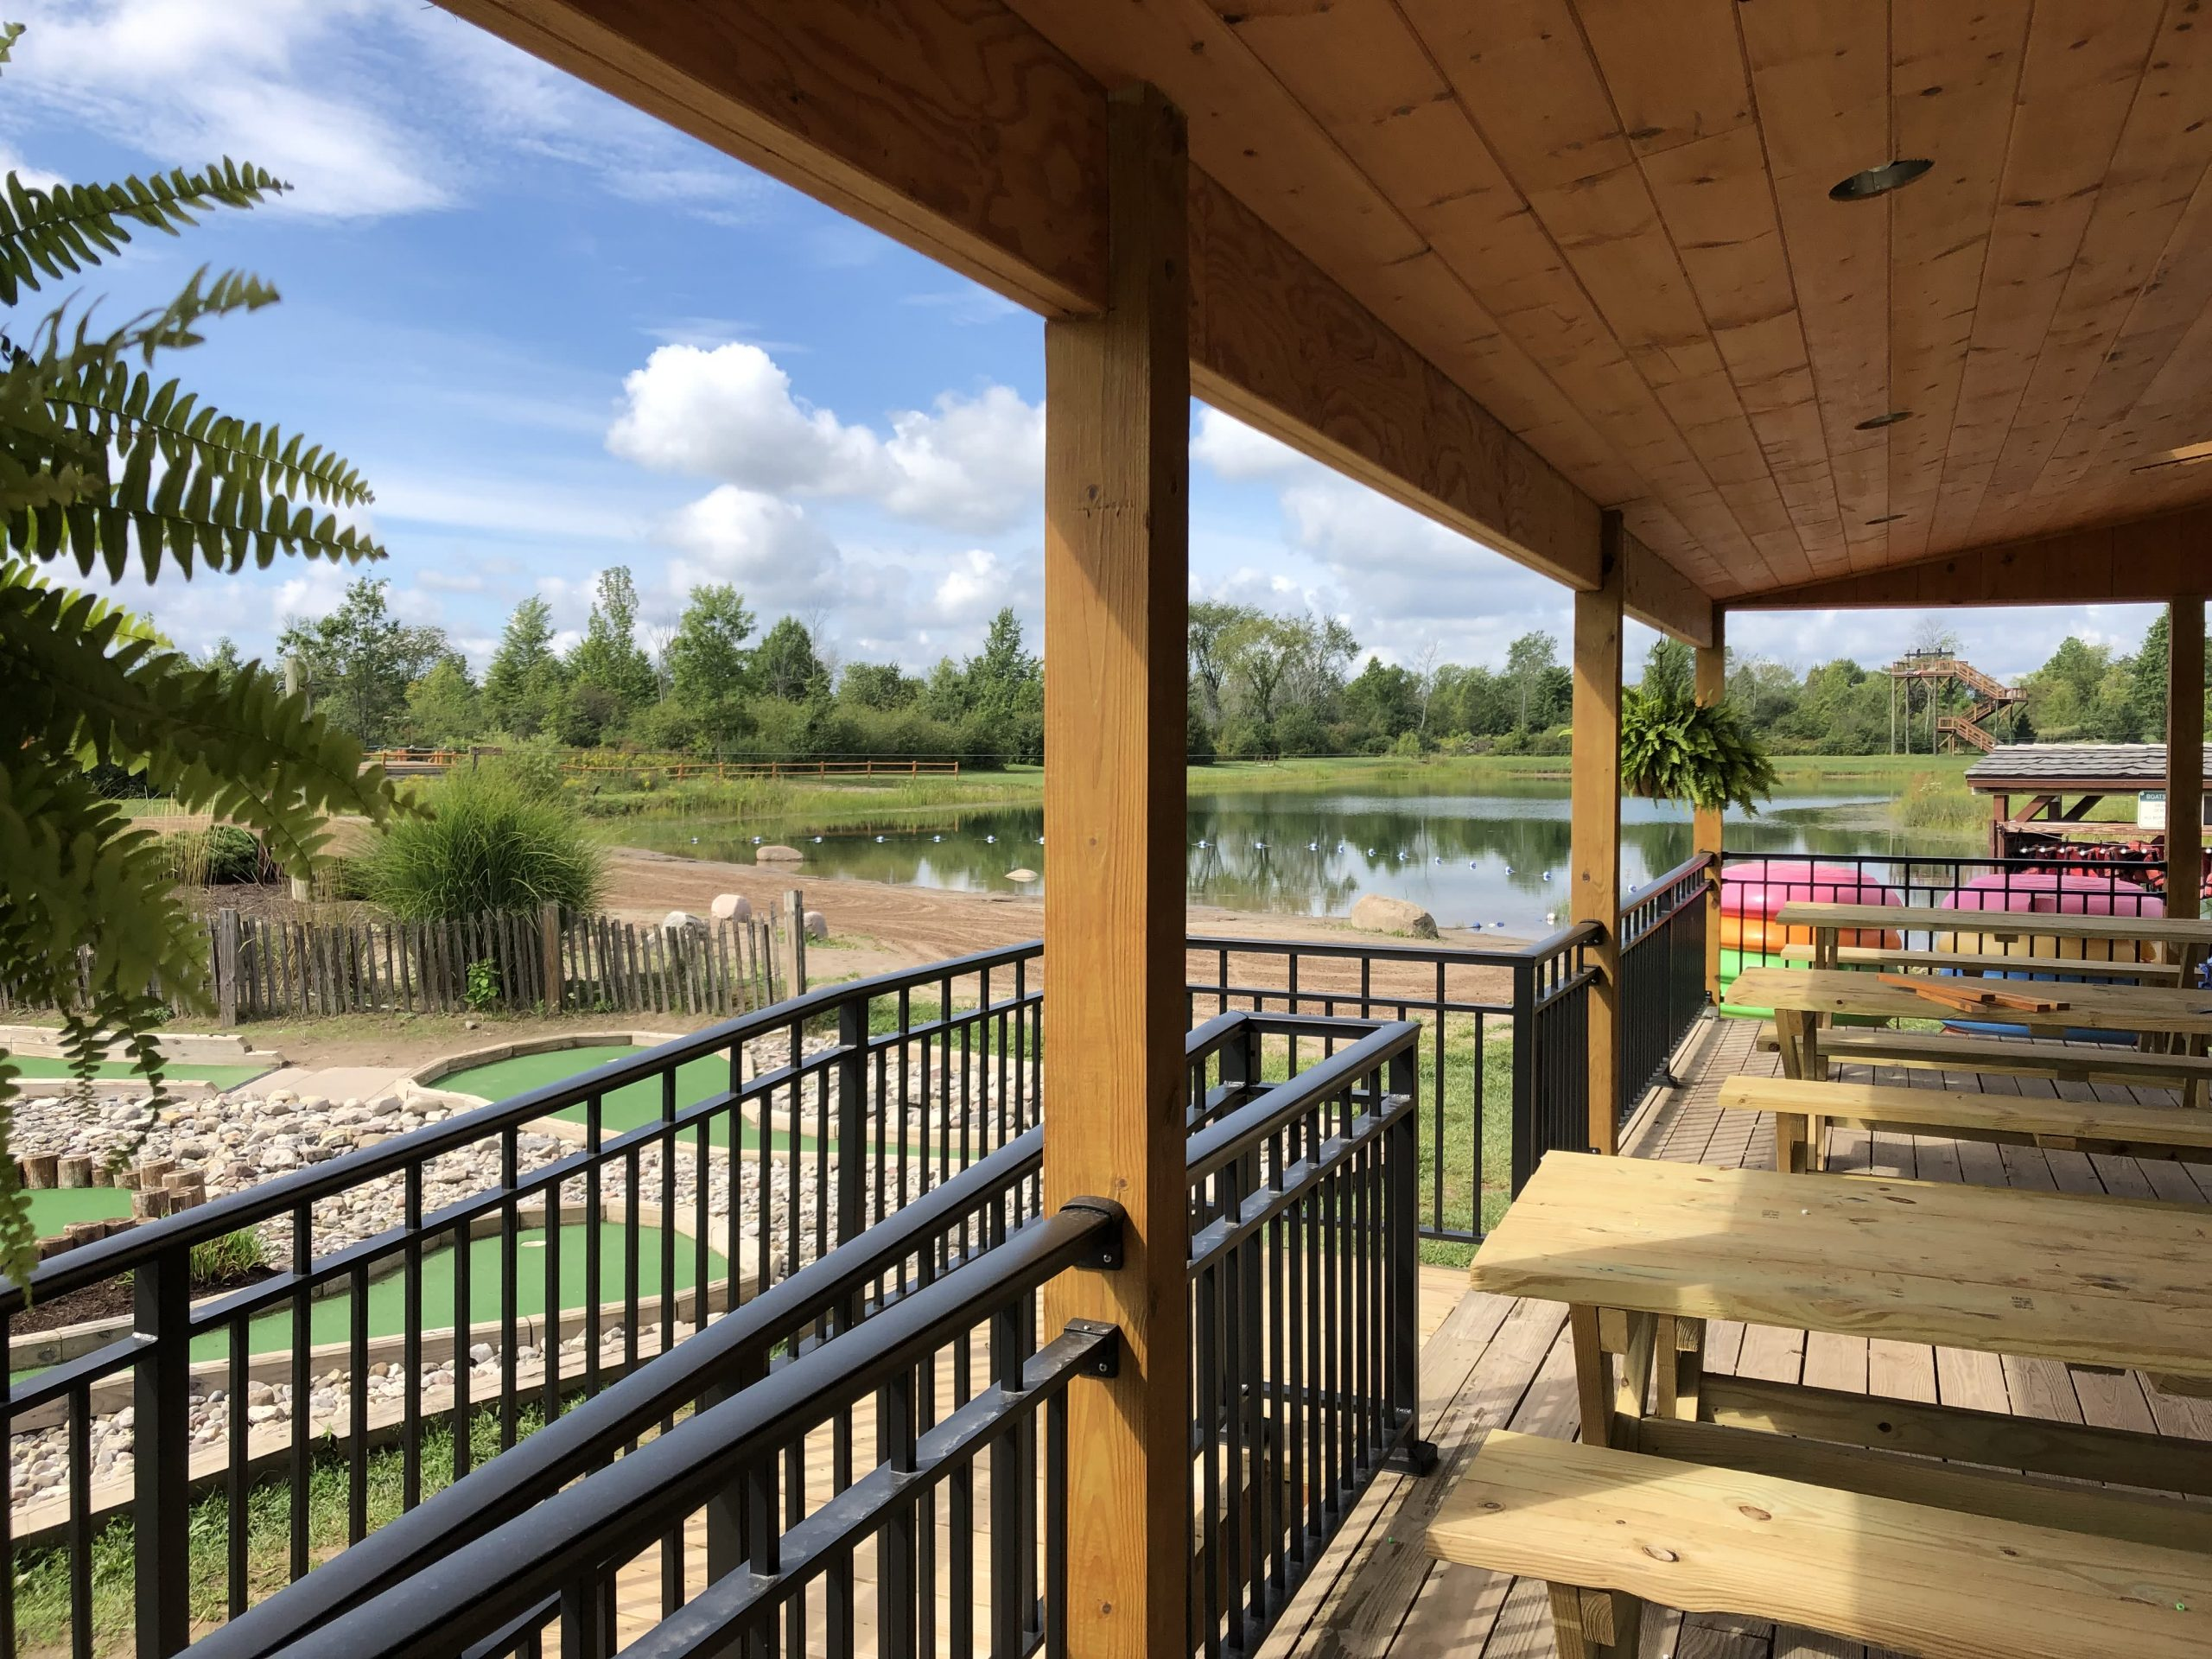 activity center with view of lake